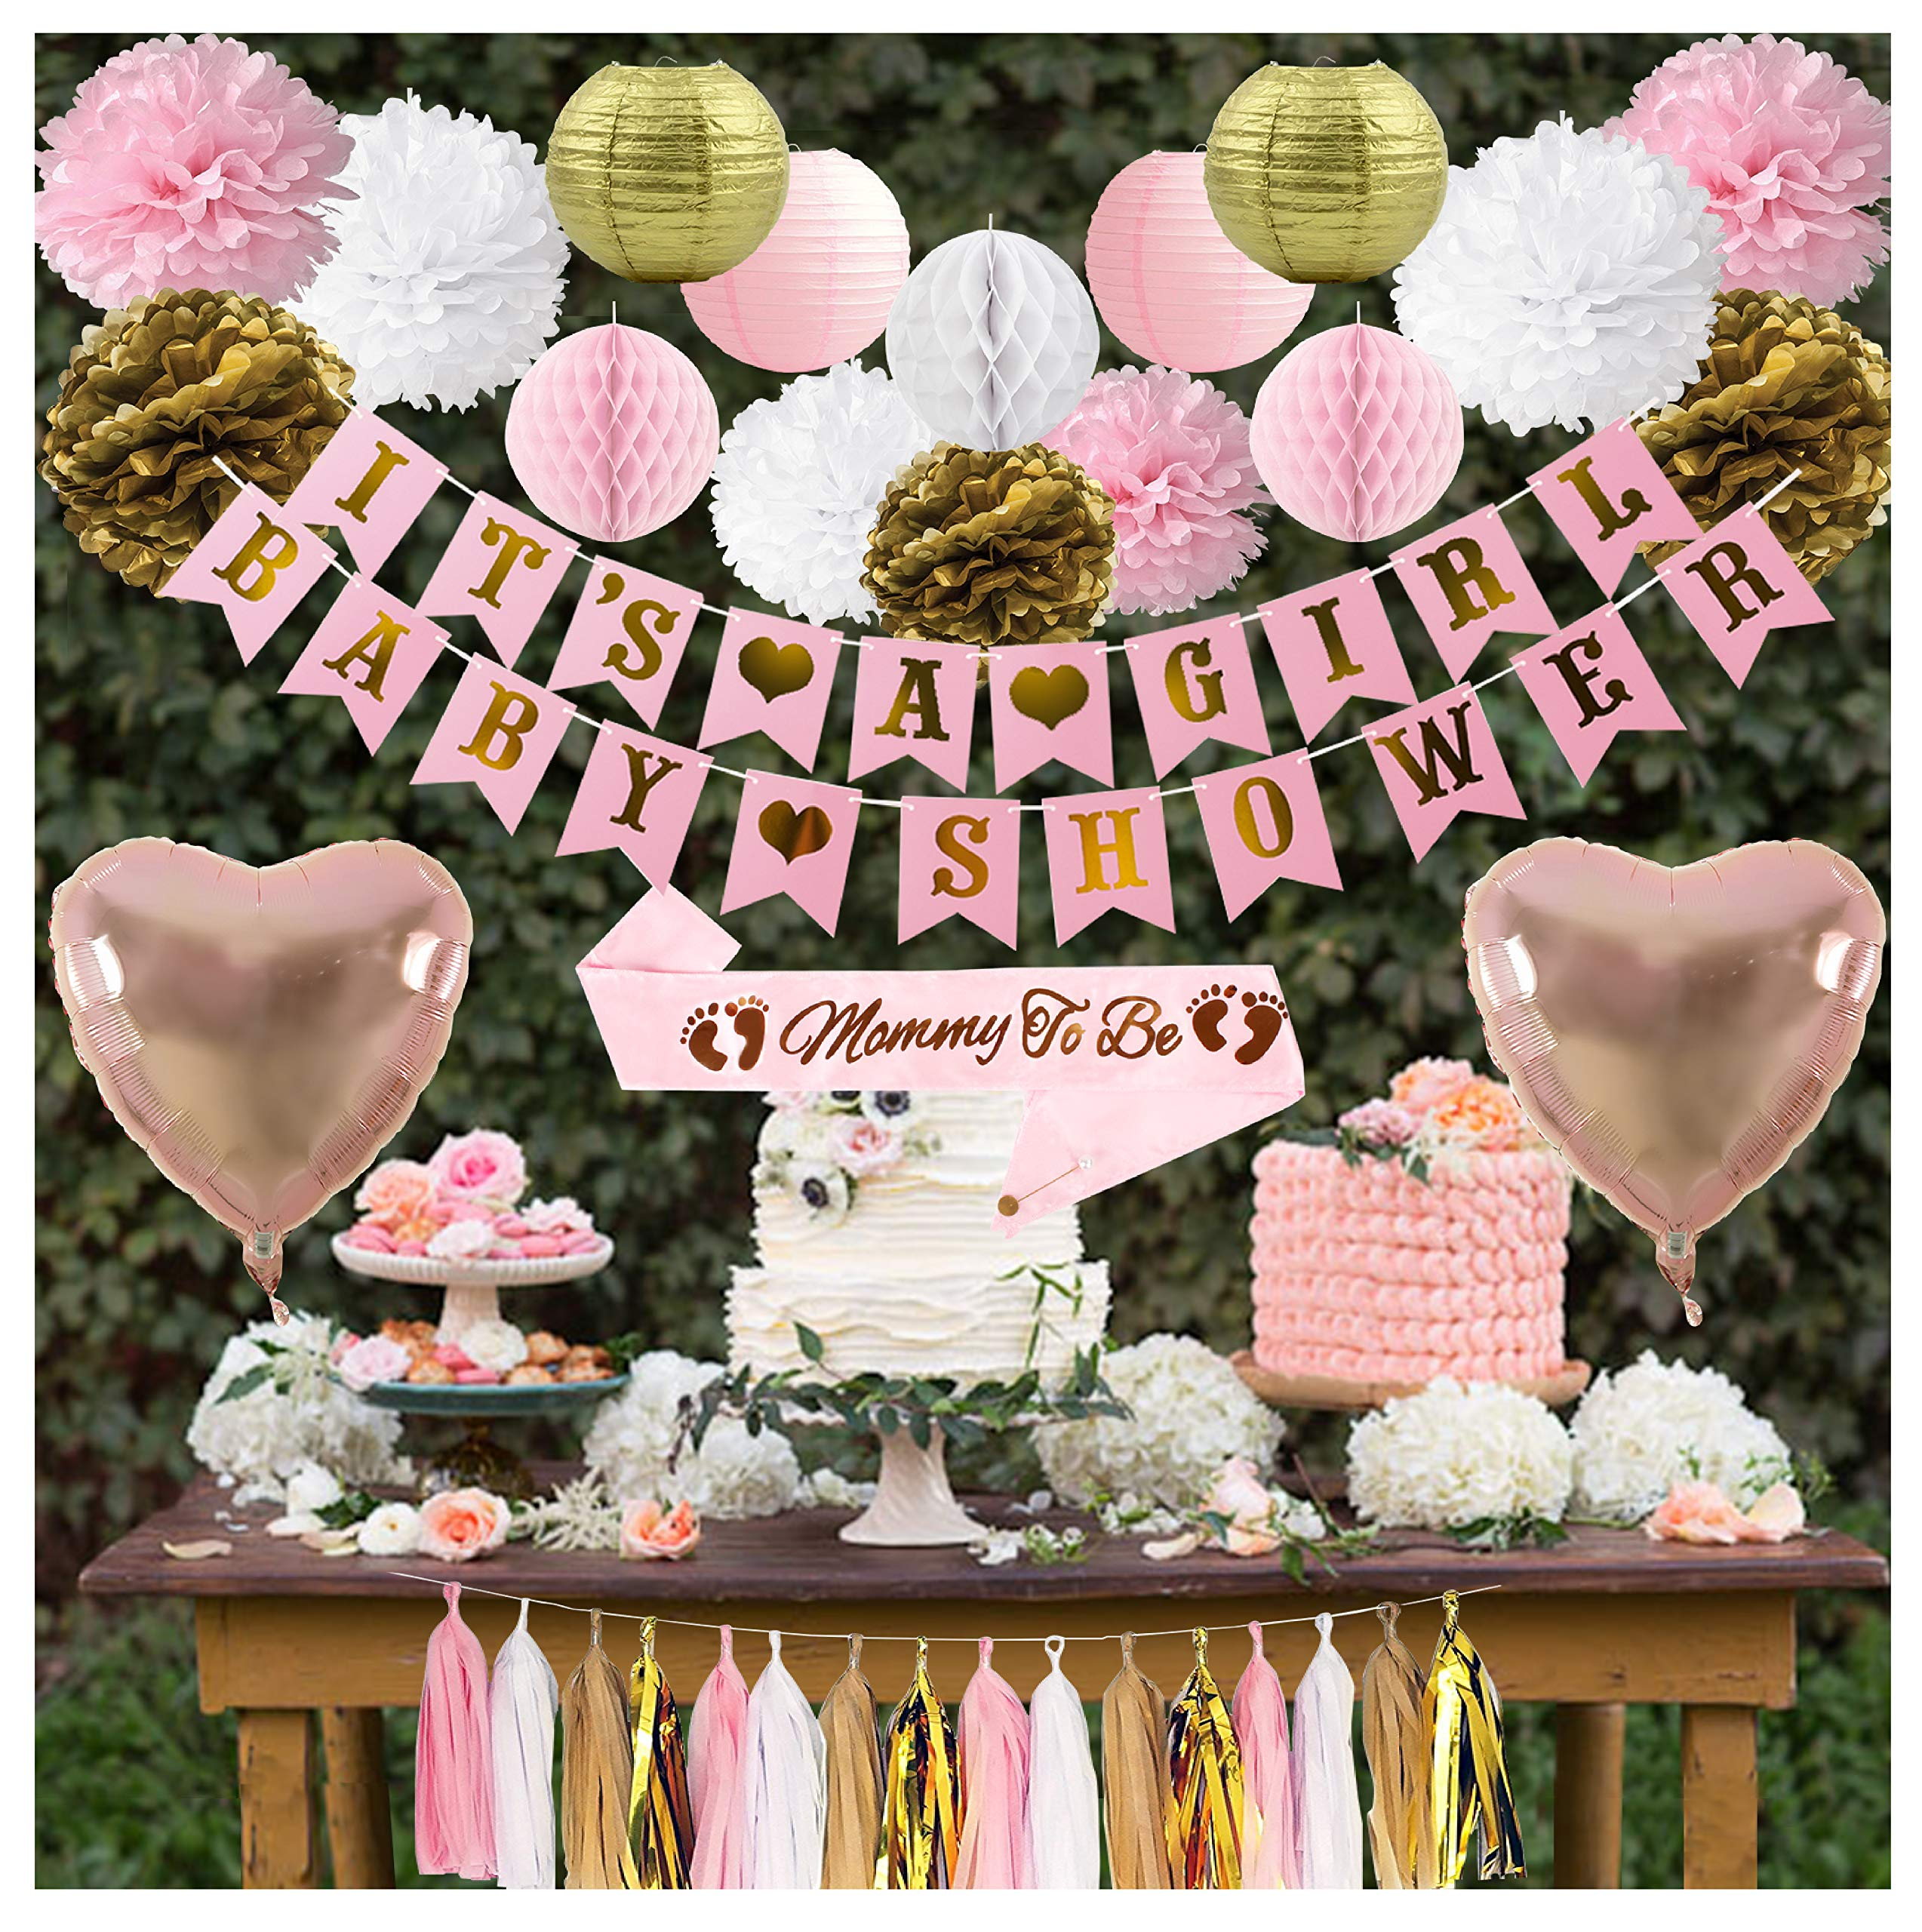 Mom's Great Choice Baby Girl Shower Decorations Set | Mommy to Be Sash | Its a Girl & Baby Shower Banner | Heart Shaped Foil Balloons | Pom Poms | Tissue Garland | Lanterns | Perfect for Gifts